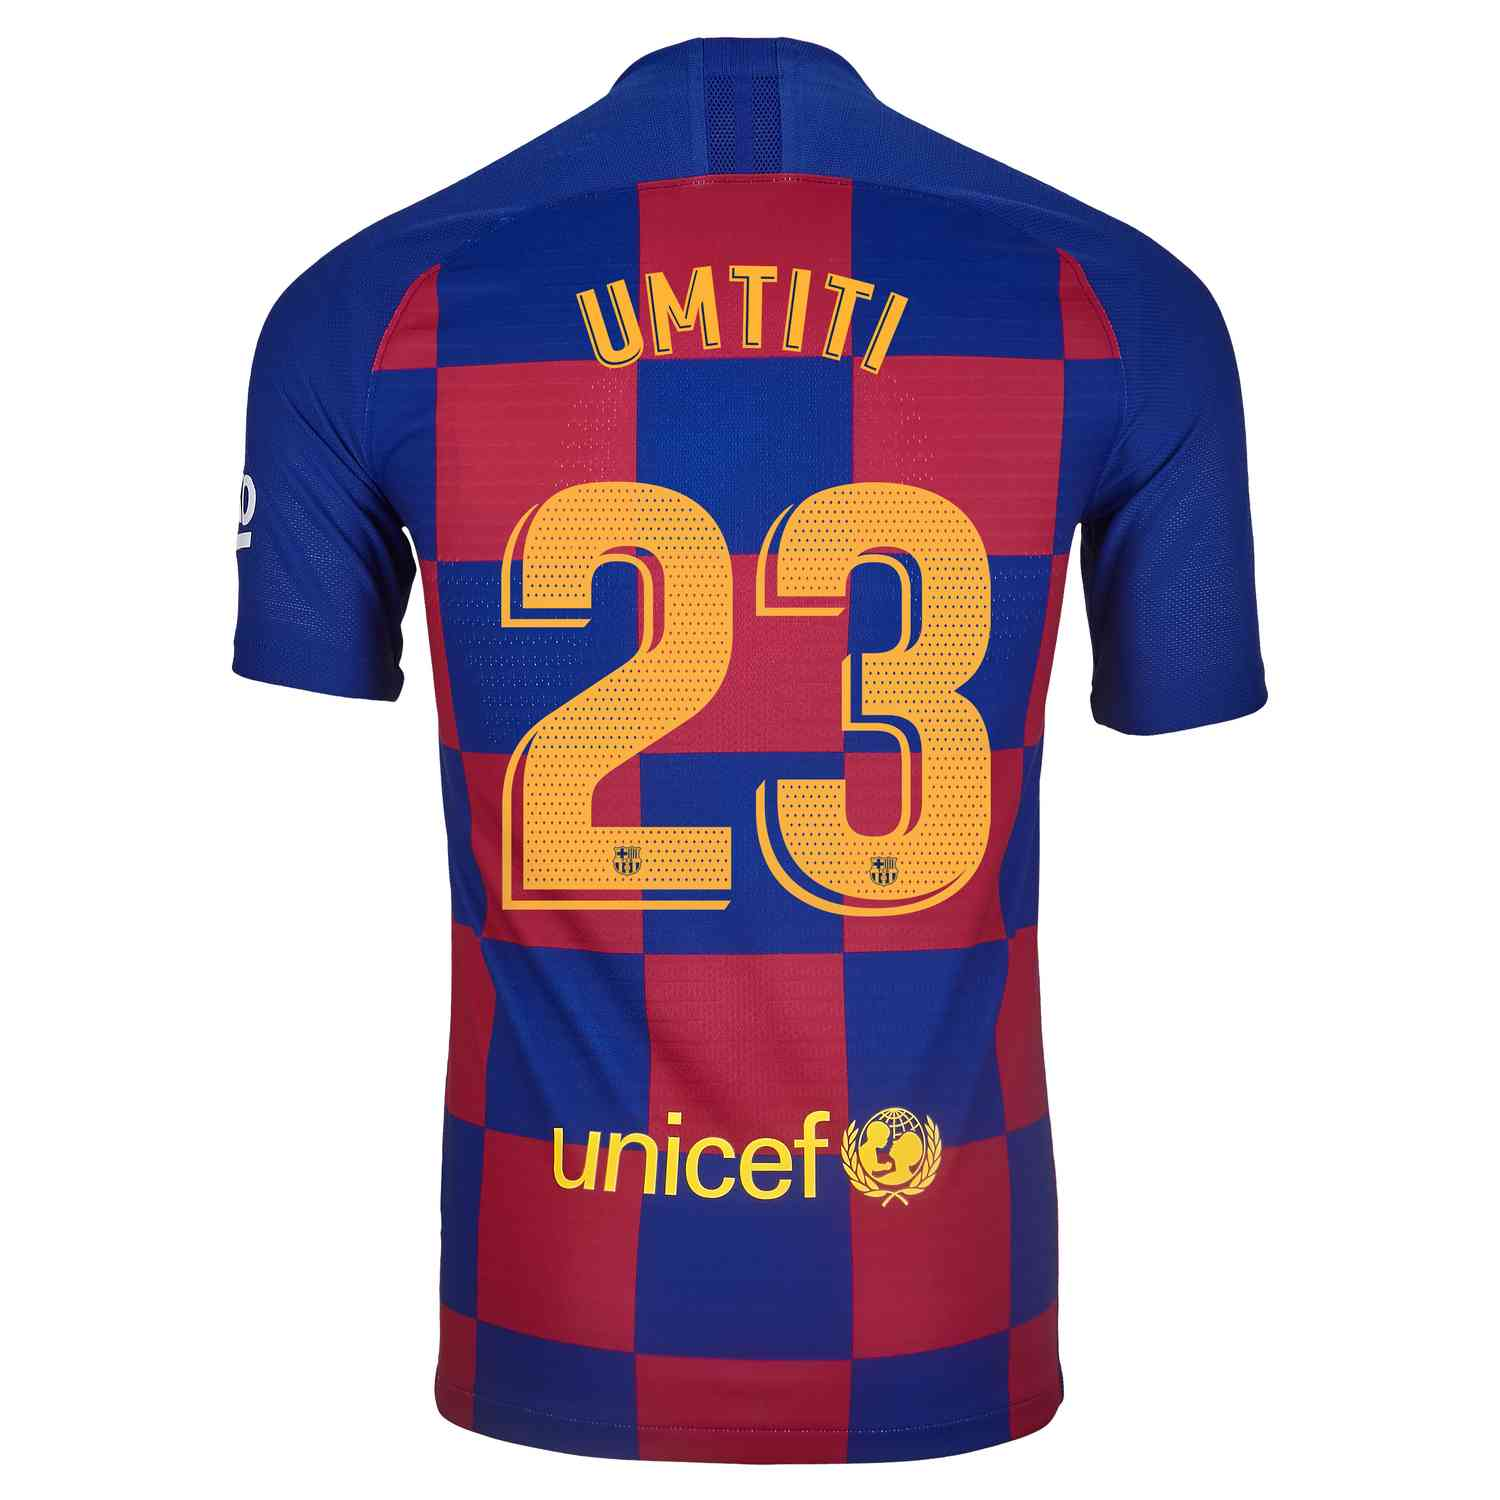 factory authentic e12c4 7d759 2019/20 Nike Samuel Umtiti Barcelona Home Match Jersey ...